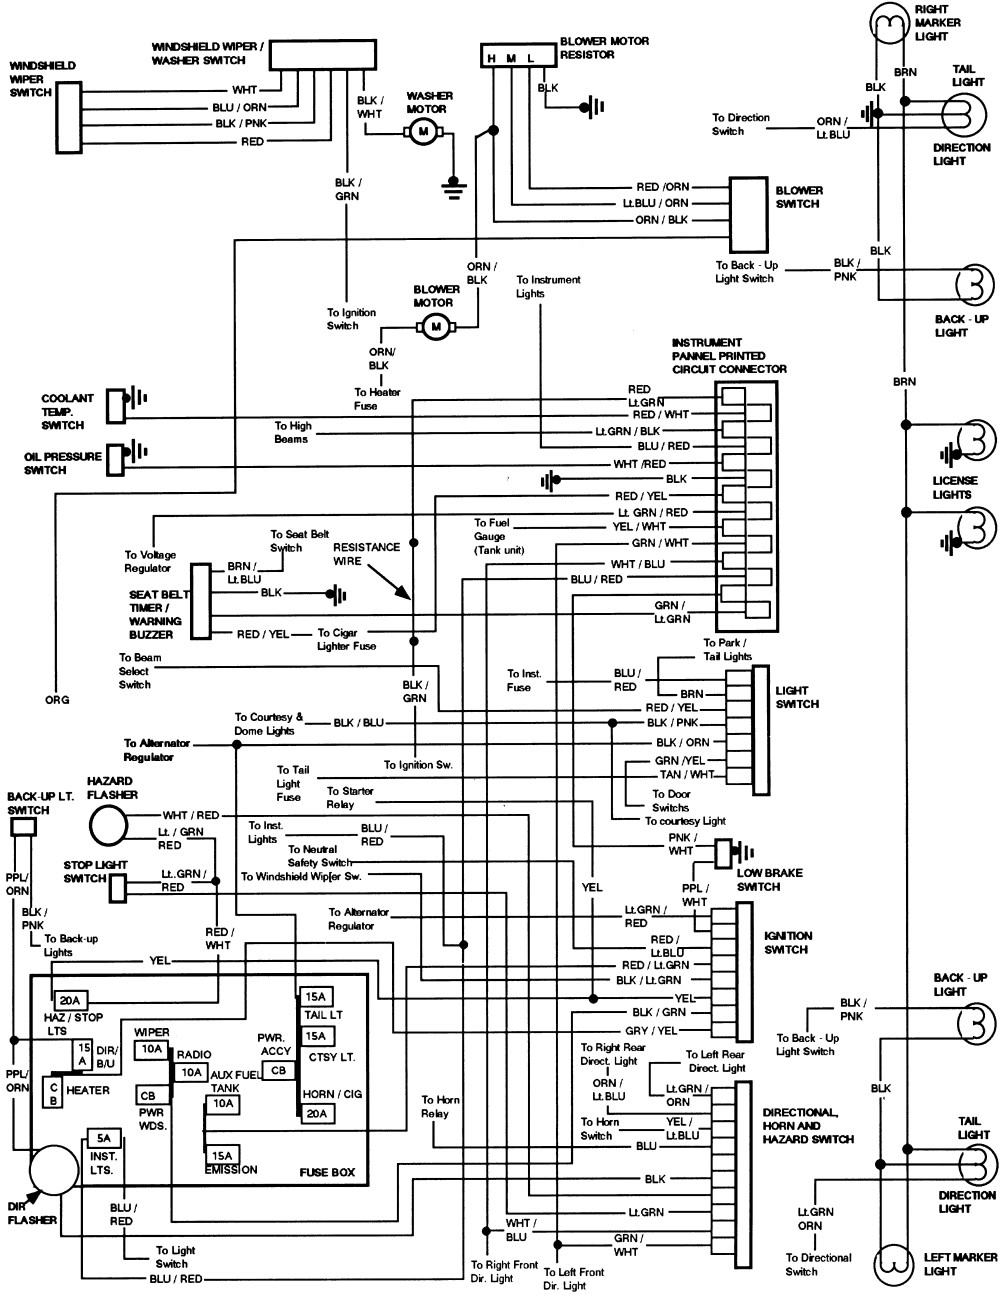 2001 Toyota Tacoma Wiring Diagram from static-assets.imageservice.cloud